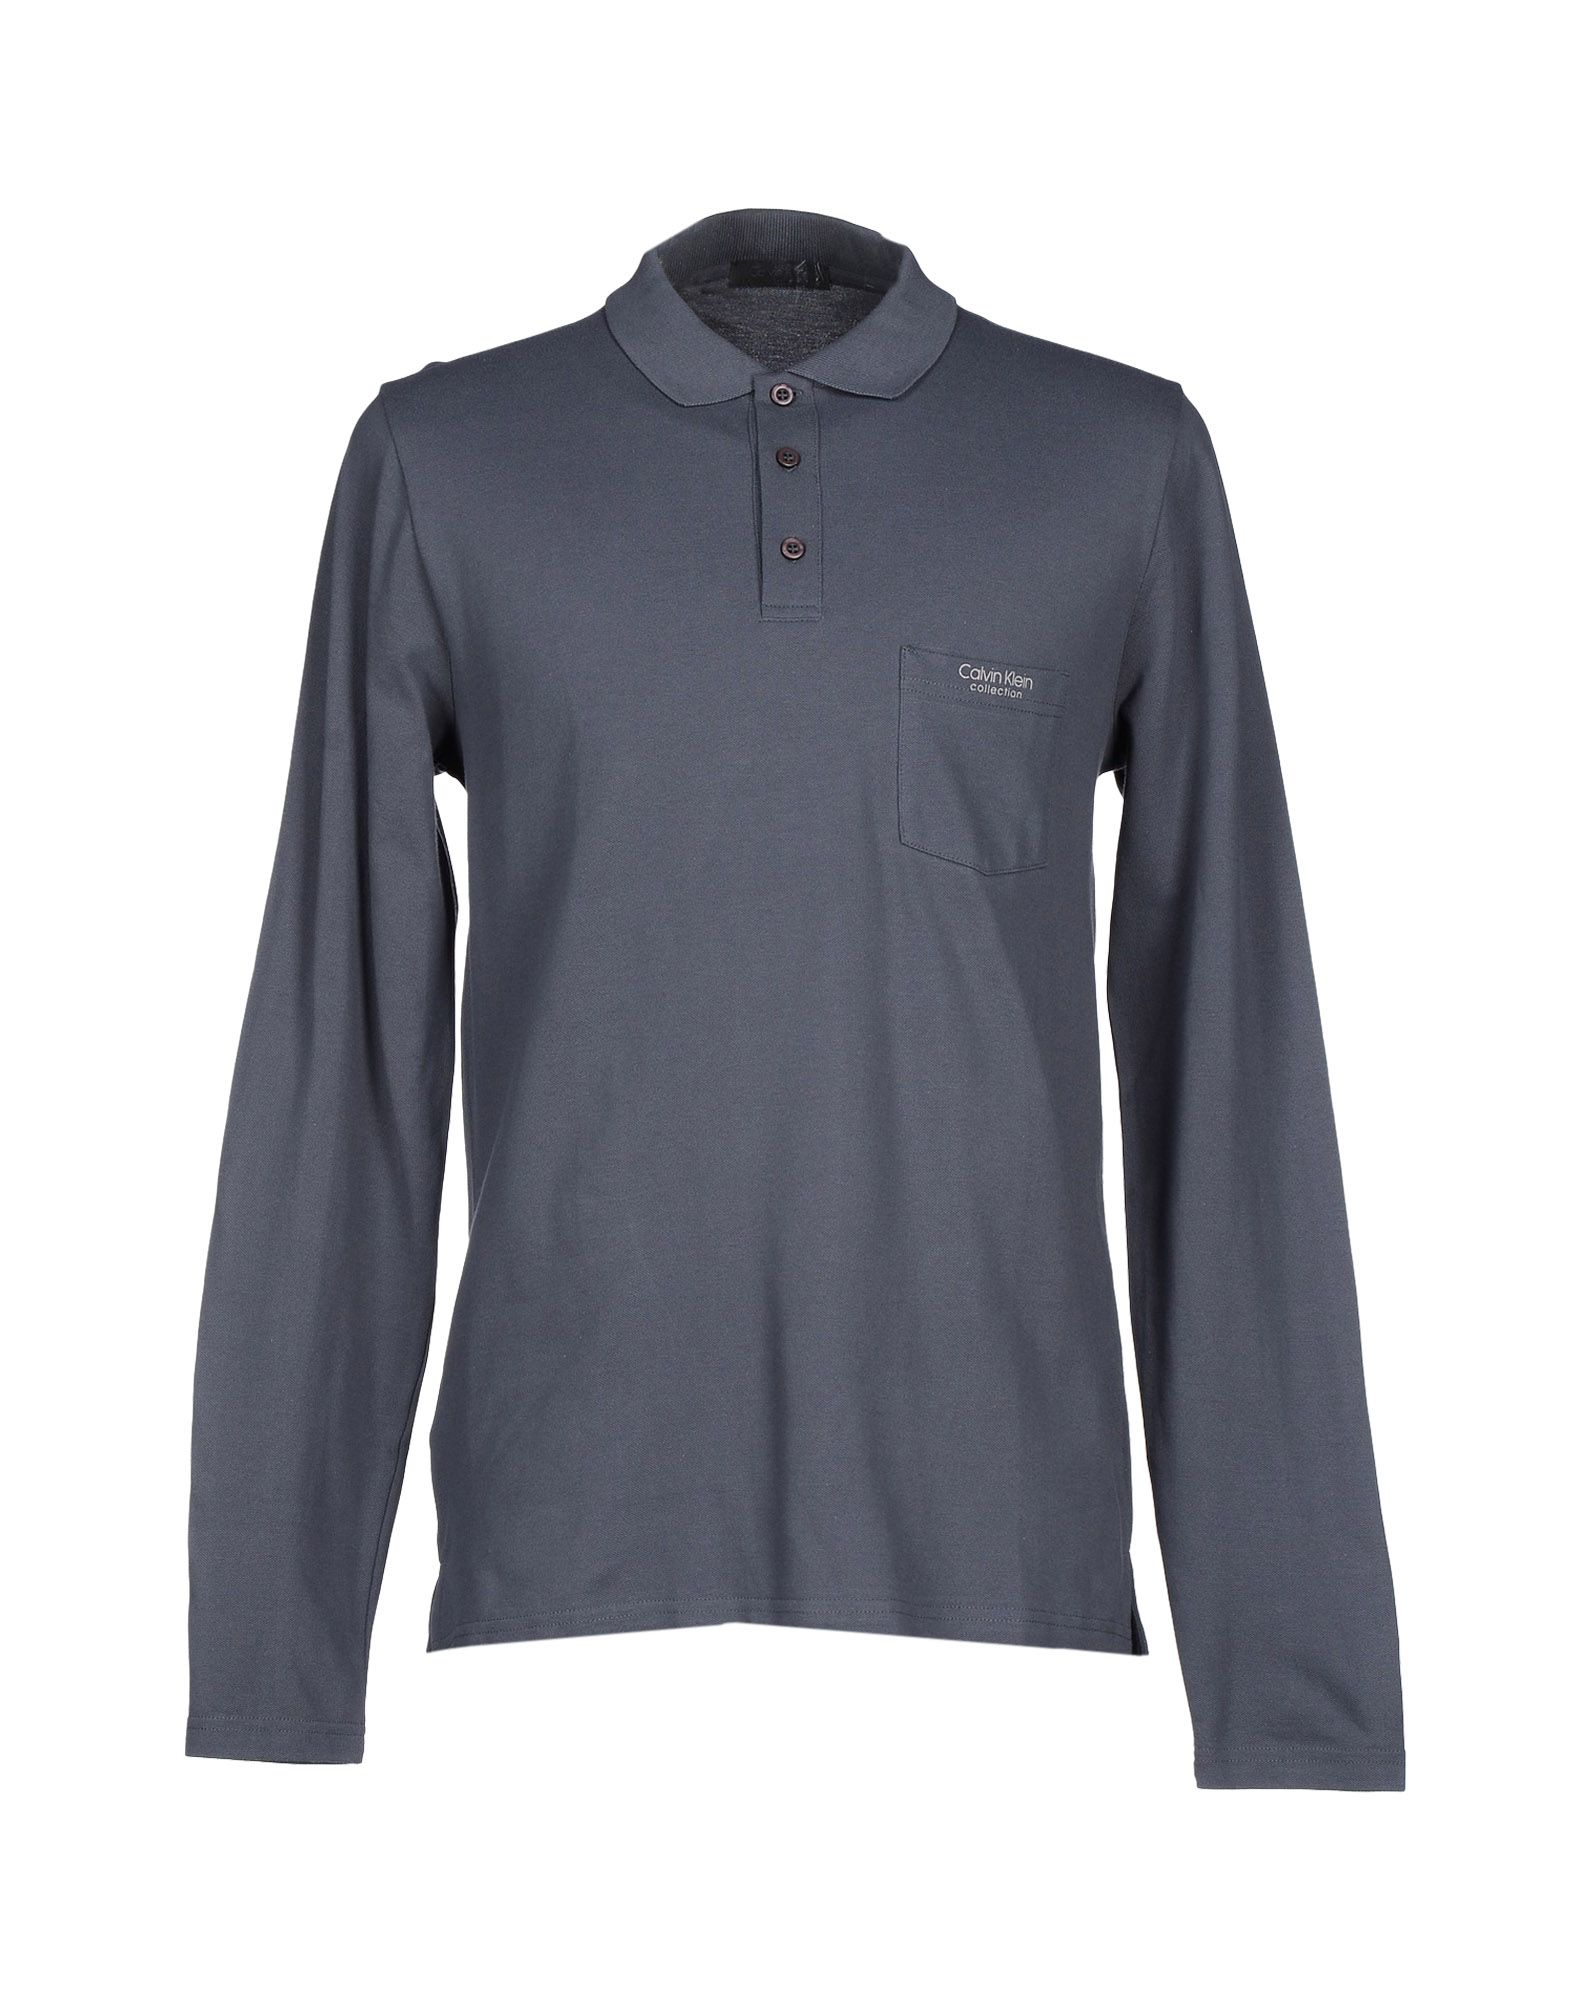 Calvin klein polo shirt in blue for men lyst for Bear river workwear shirts